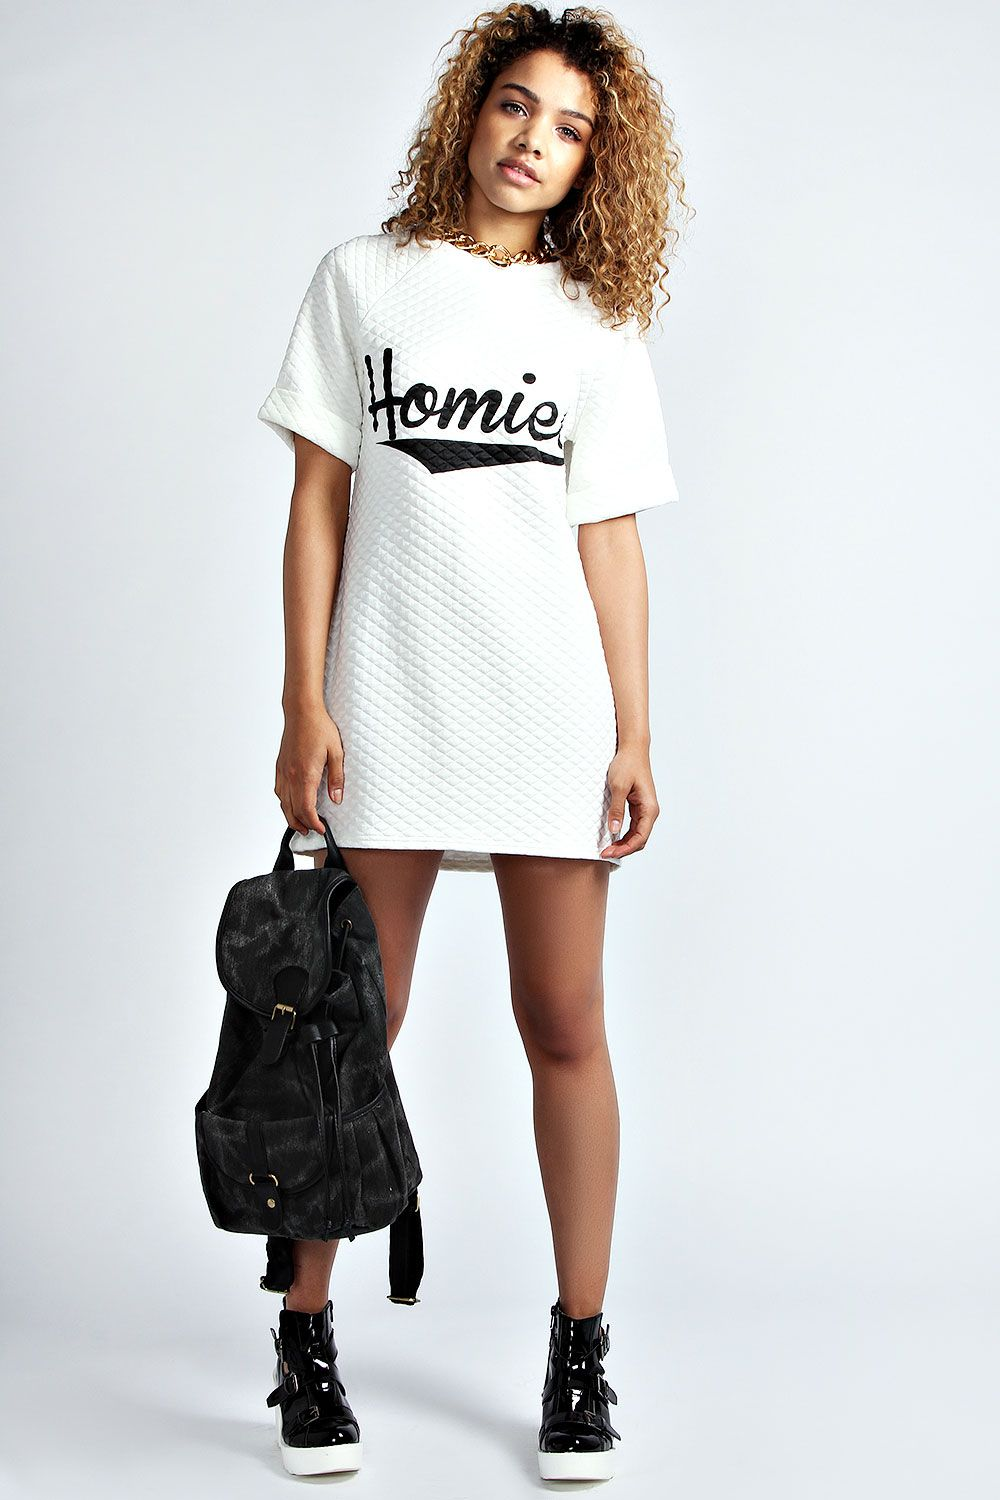 White t shirt dress outfit - Homie Quilted Tshirt Dress Urban Fashion Hip Hop Fashion Swag Dope